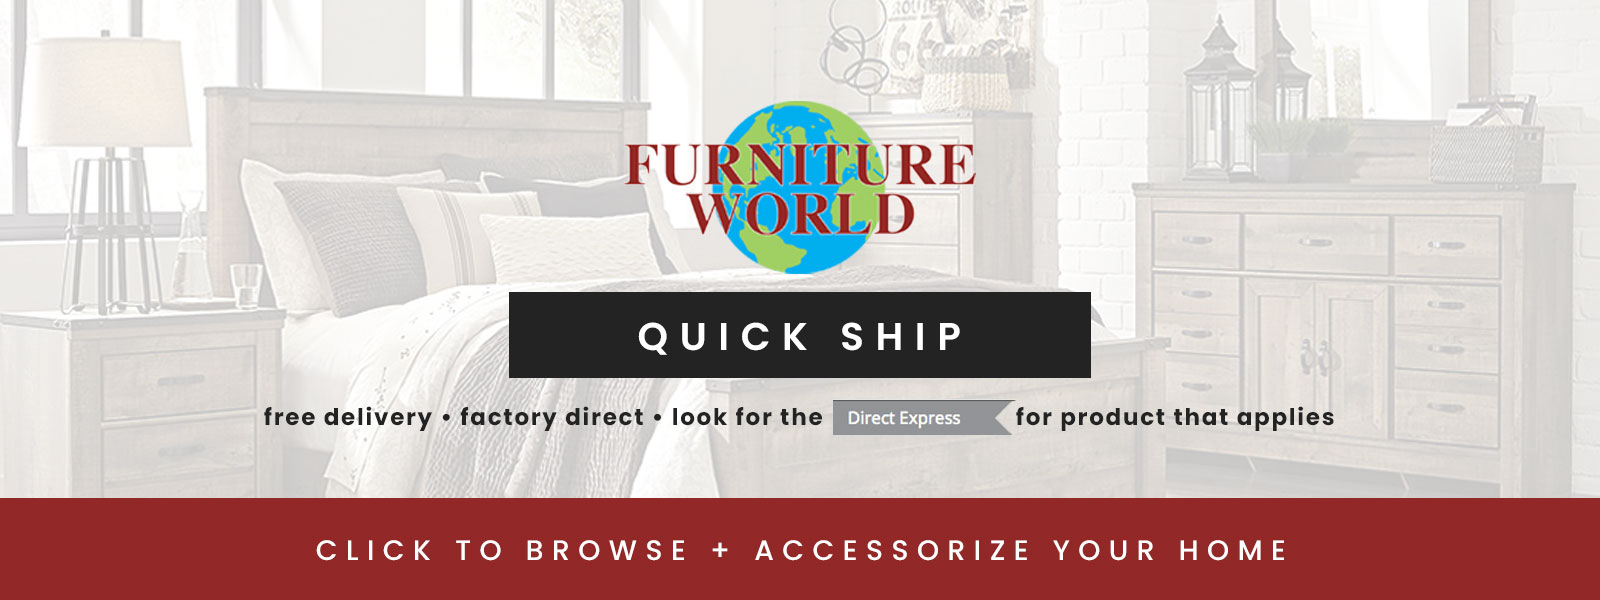 Furniture-World-NW-Express-Banner